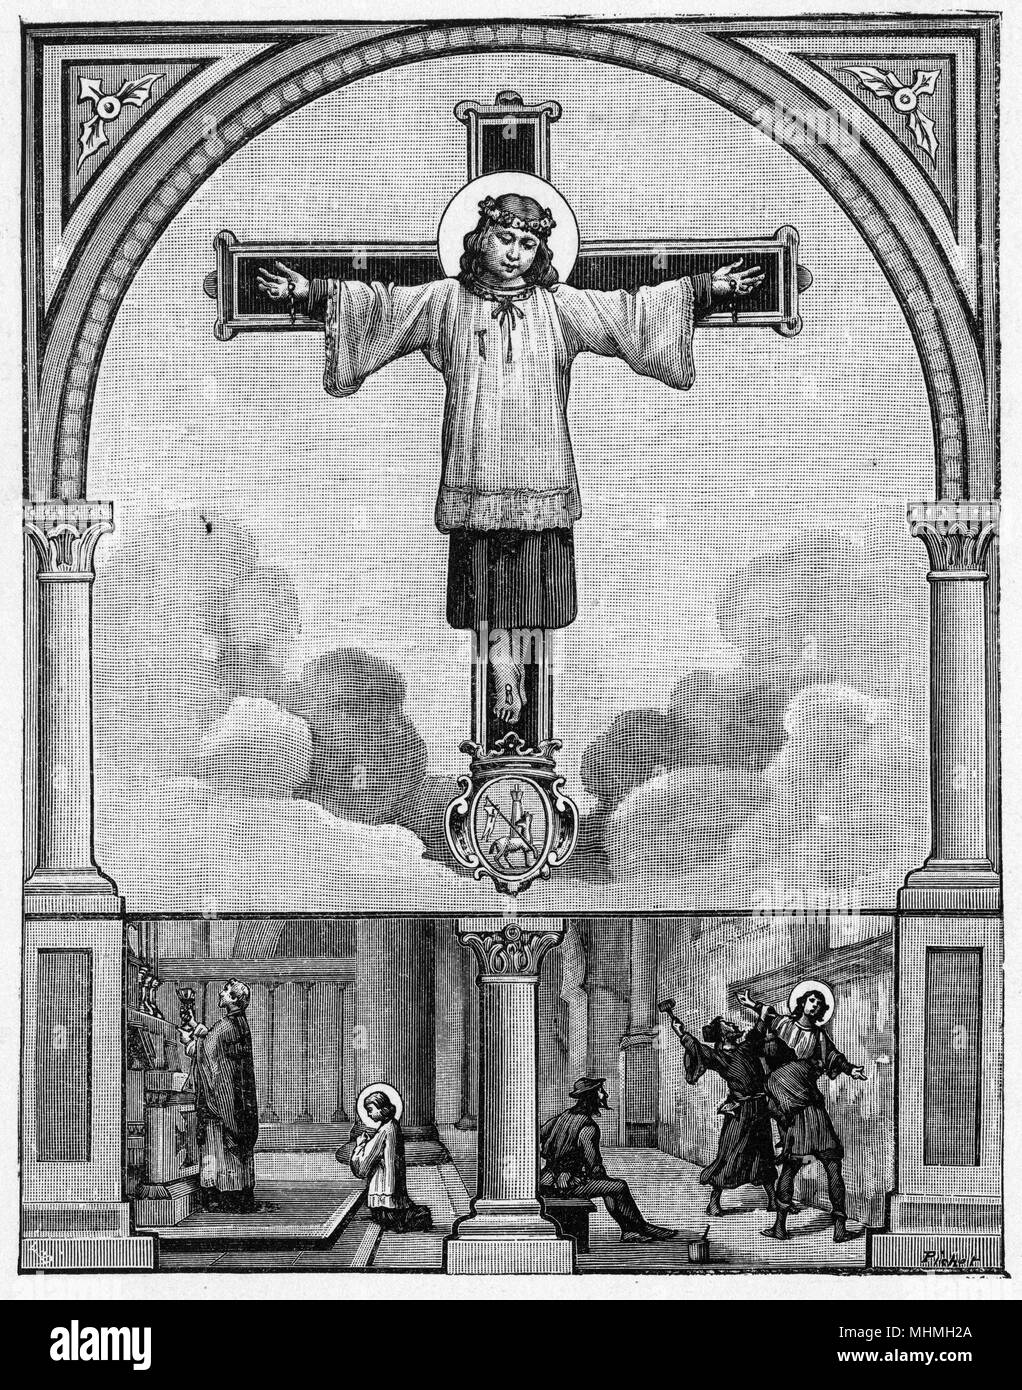 SAINT DOMINQUE OF VAL - on a crucifix after allegedly being murdered by jews in Saragosa.      Date: 1170-1221 - Stock Image